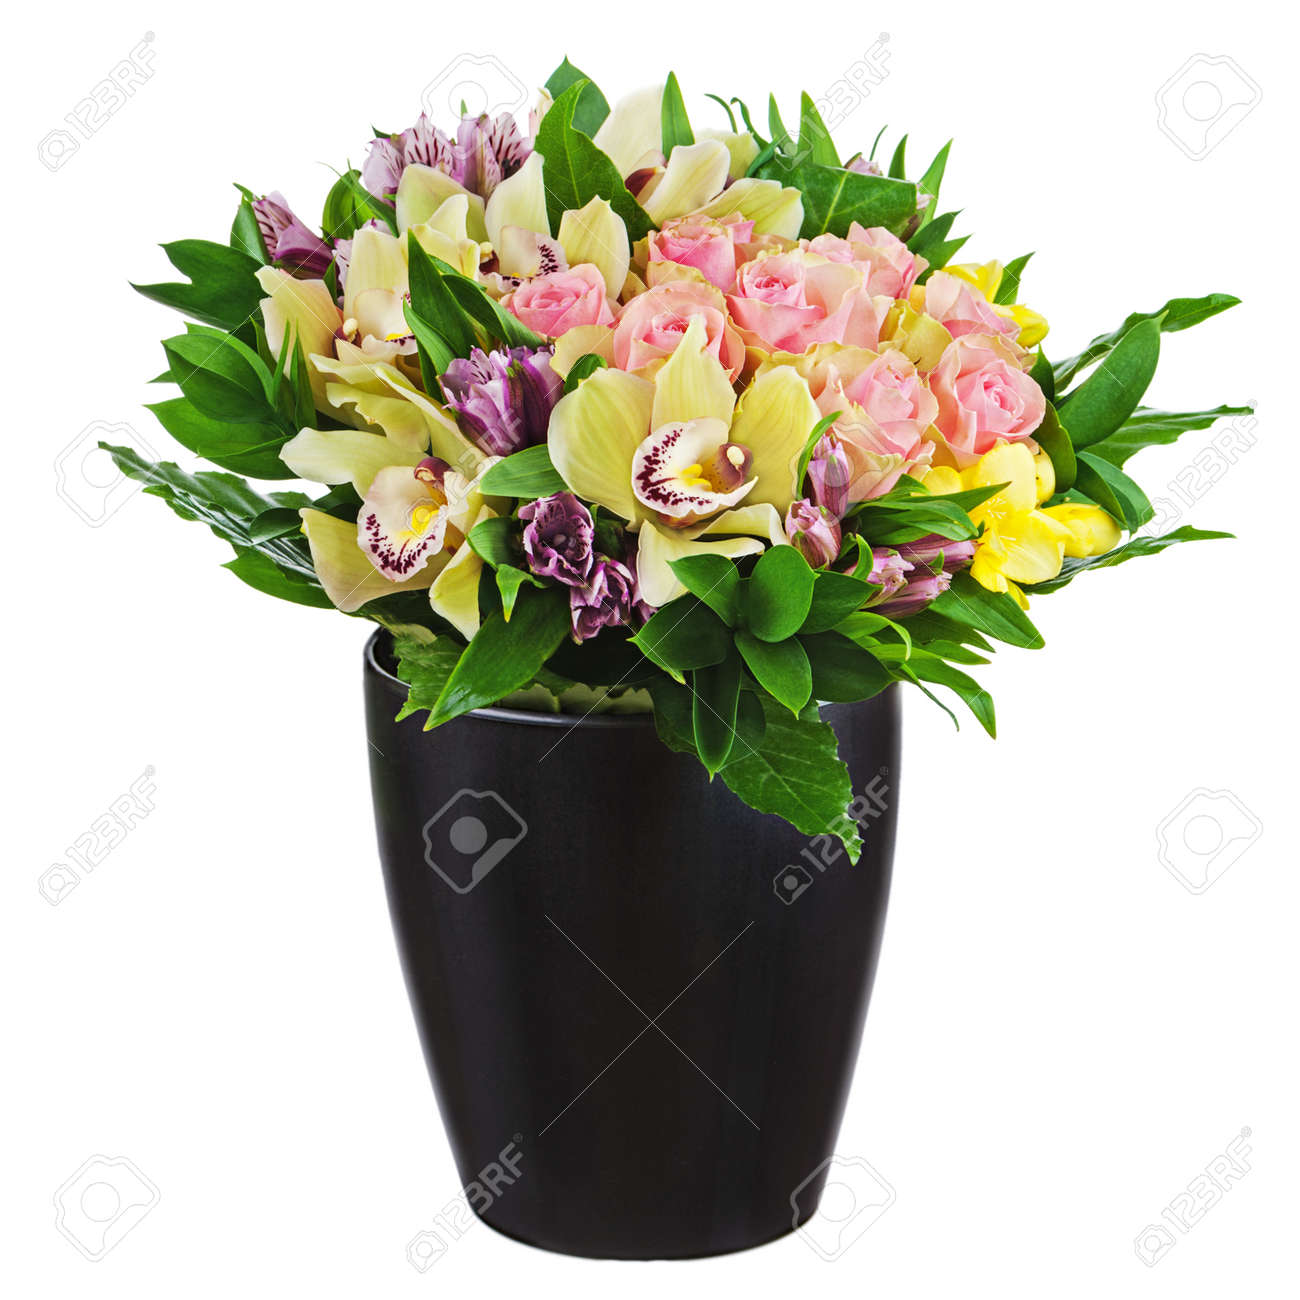 Floral bouquet of roses lilies and orchids arrangement centerpiece floral bouquet of roses lilies and orchids arrangement centerpiece in black vase isolated on white mightylinksfo